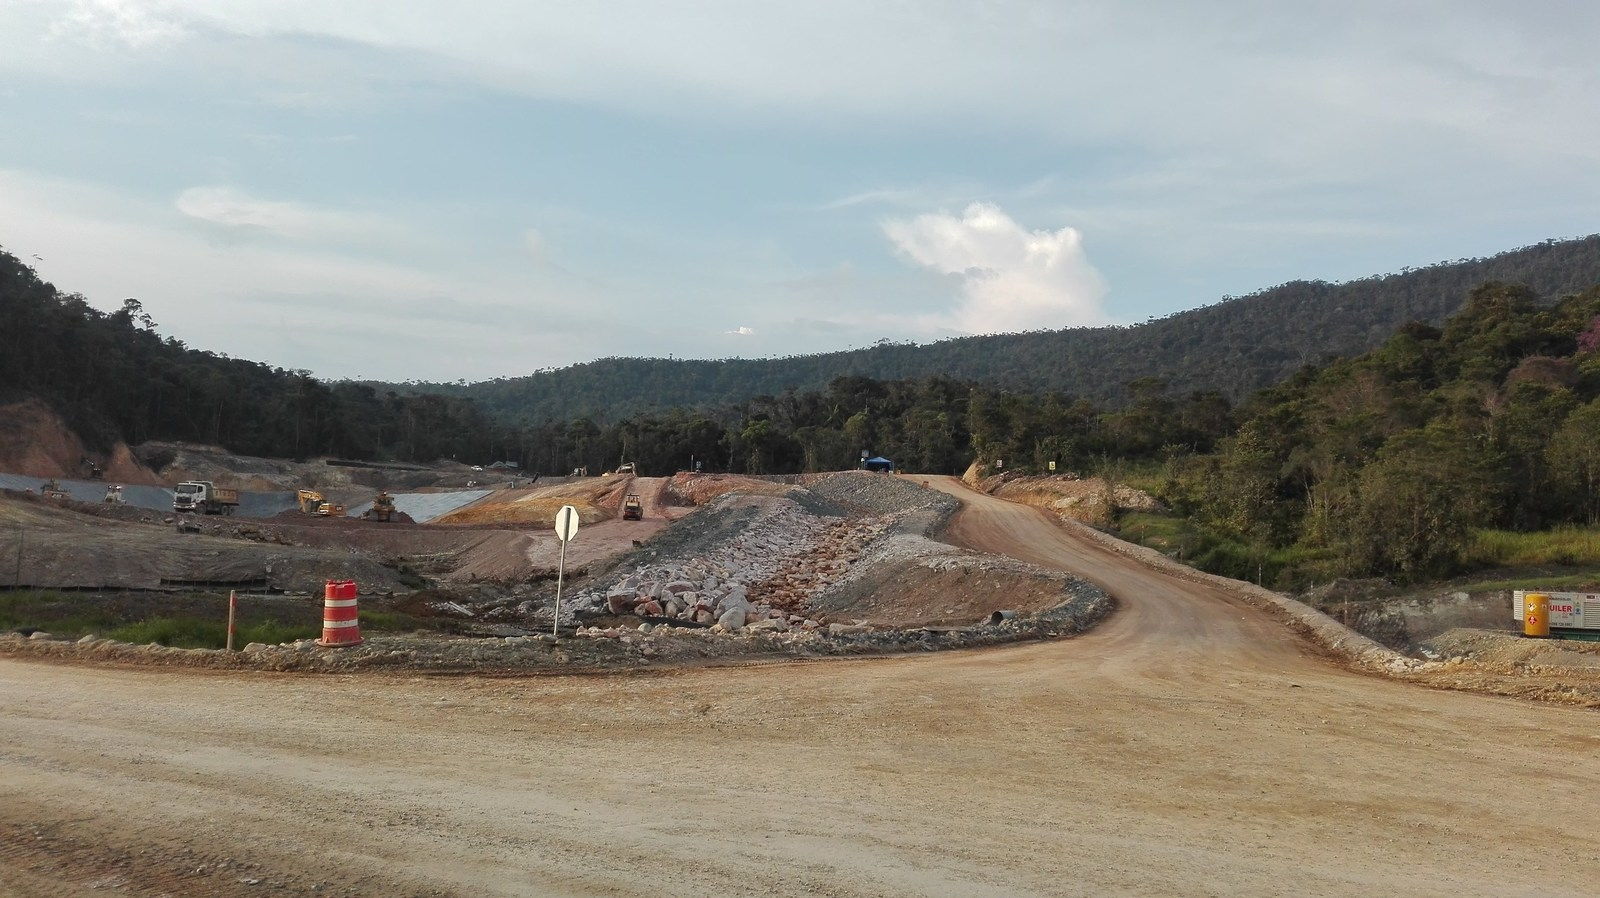 Figure 6. Construction of the Tailings Storage Facility ongoing